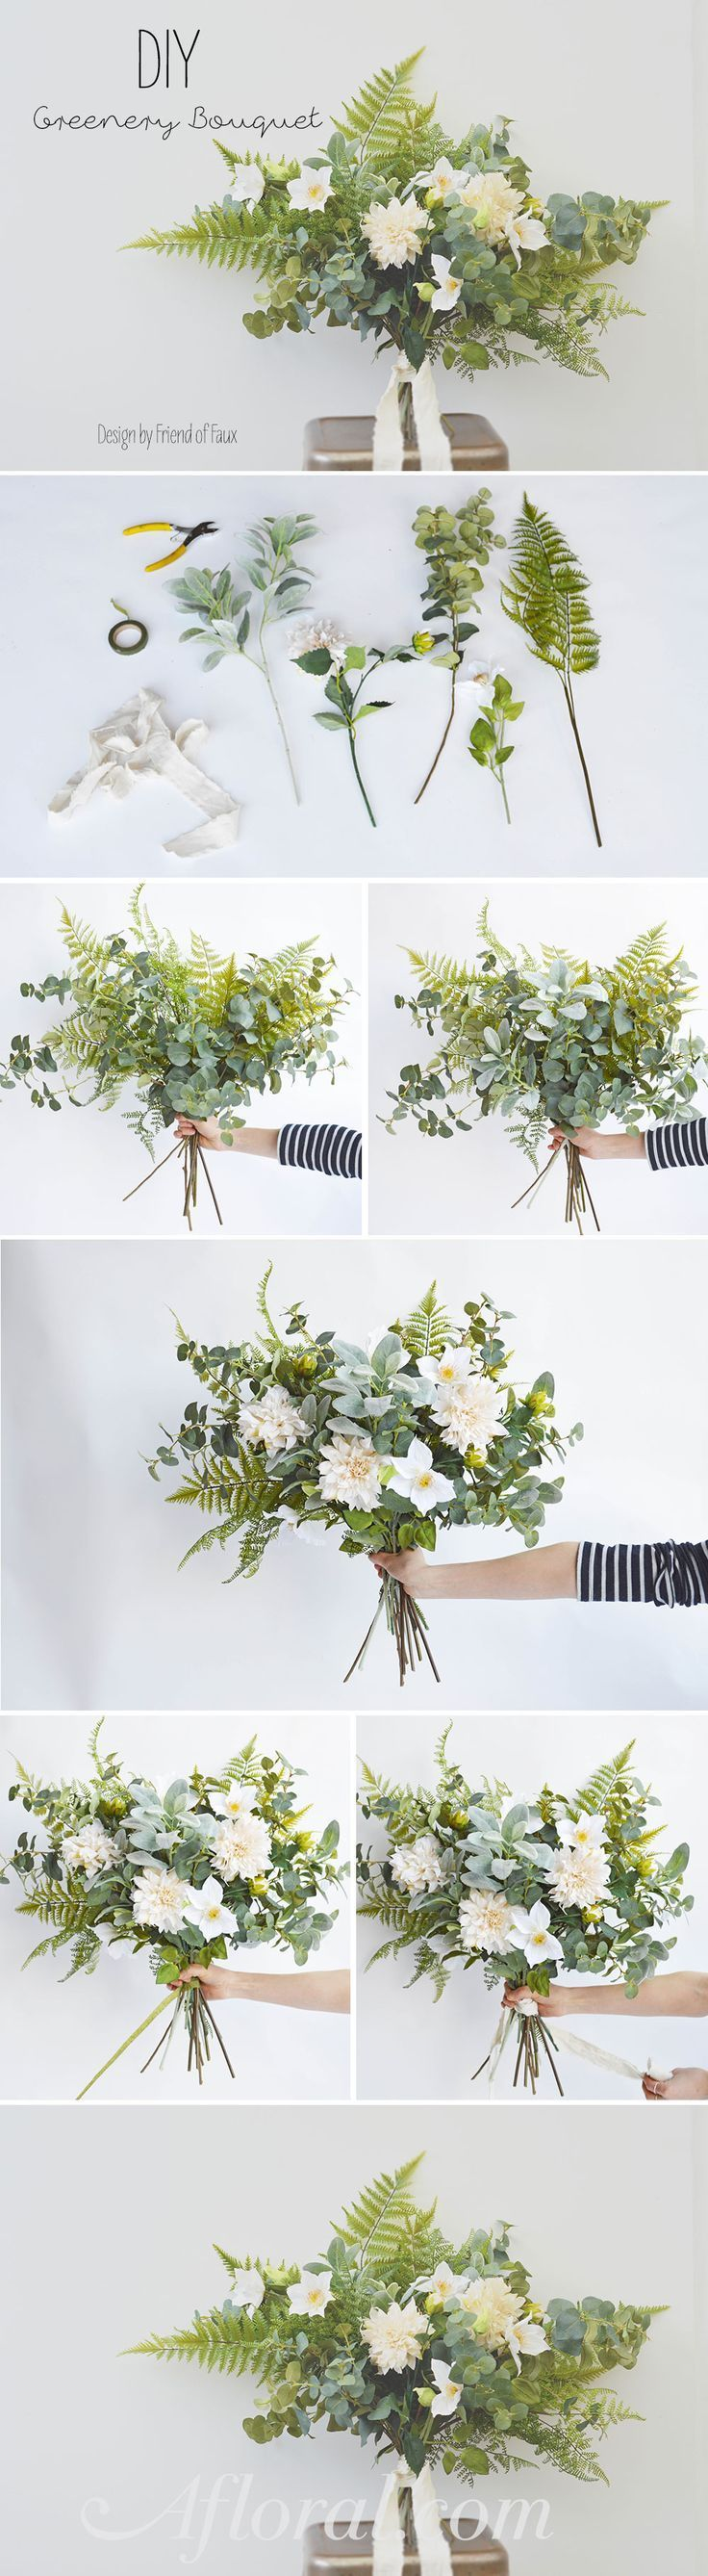 How to make your own bouquet | Styling ideas | Make your own wedding ...